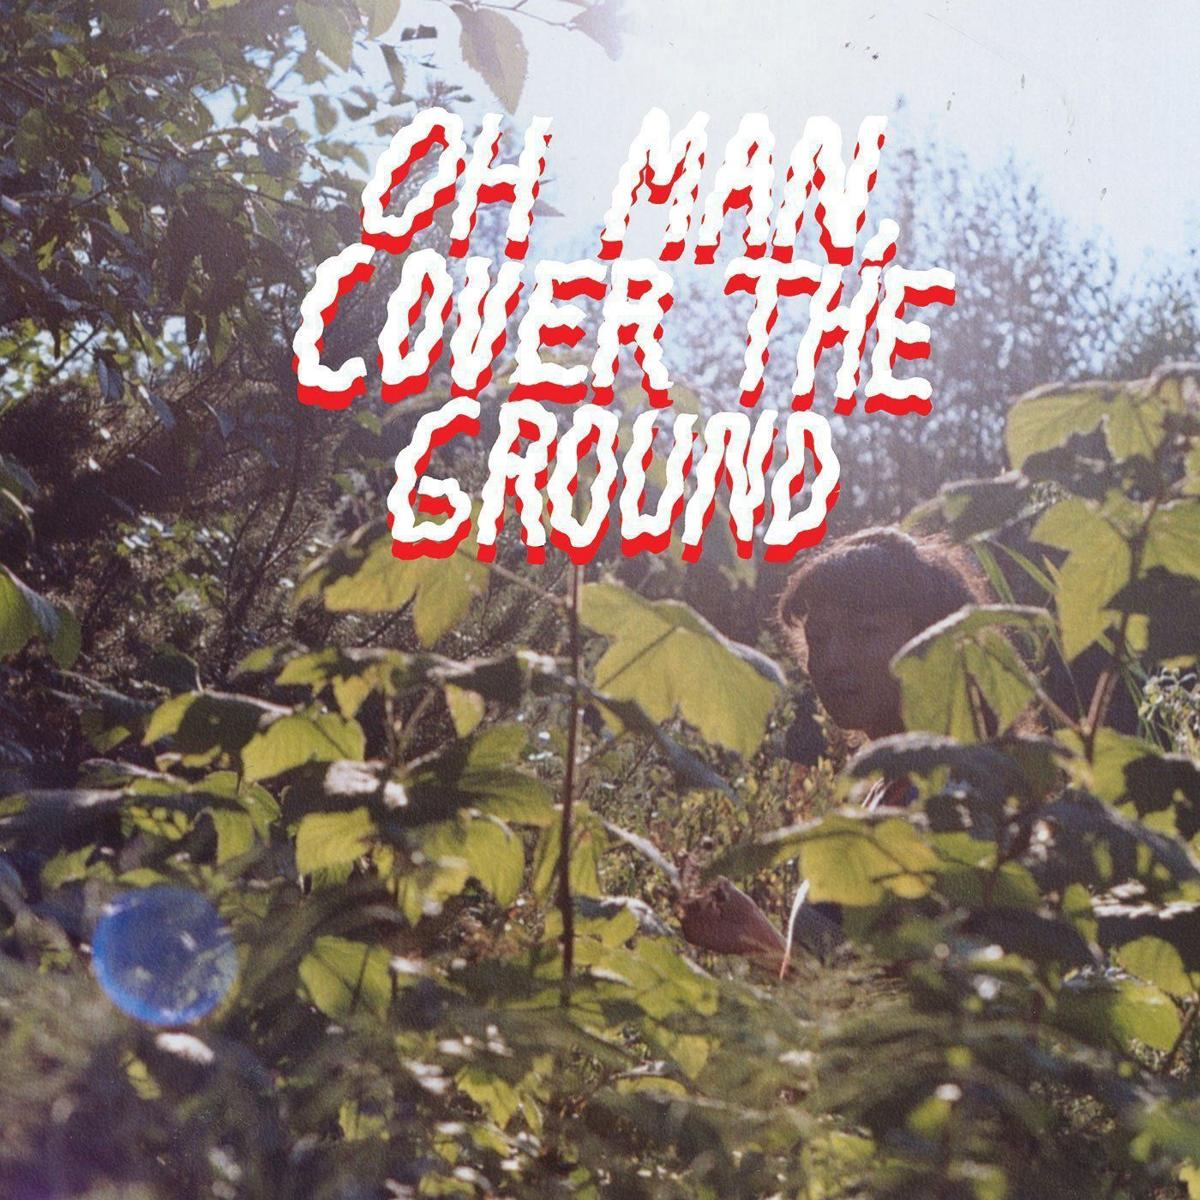 Shana Cleveland & the Sandcastles, 'Oh Man, Cover the Ground,' Suicide Squeeze